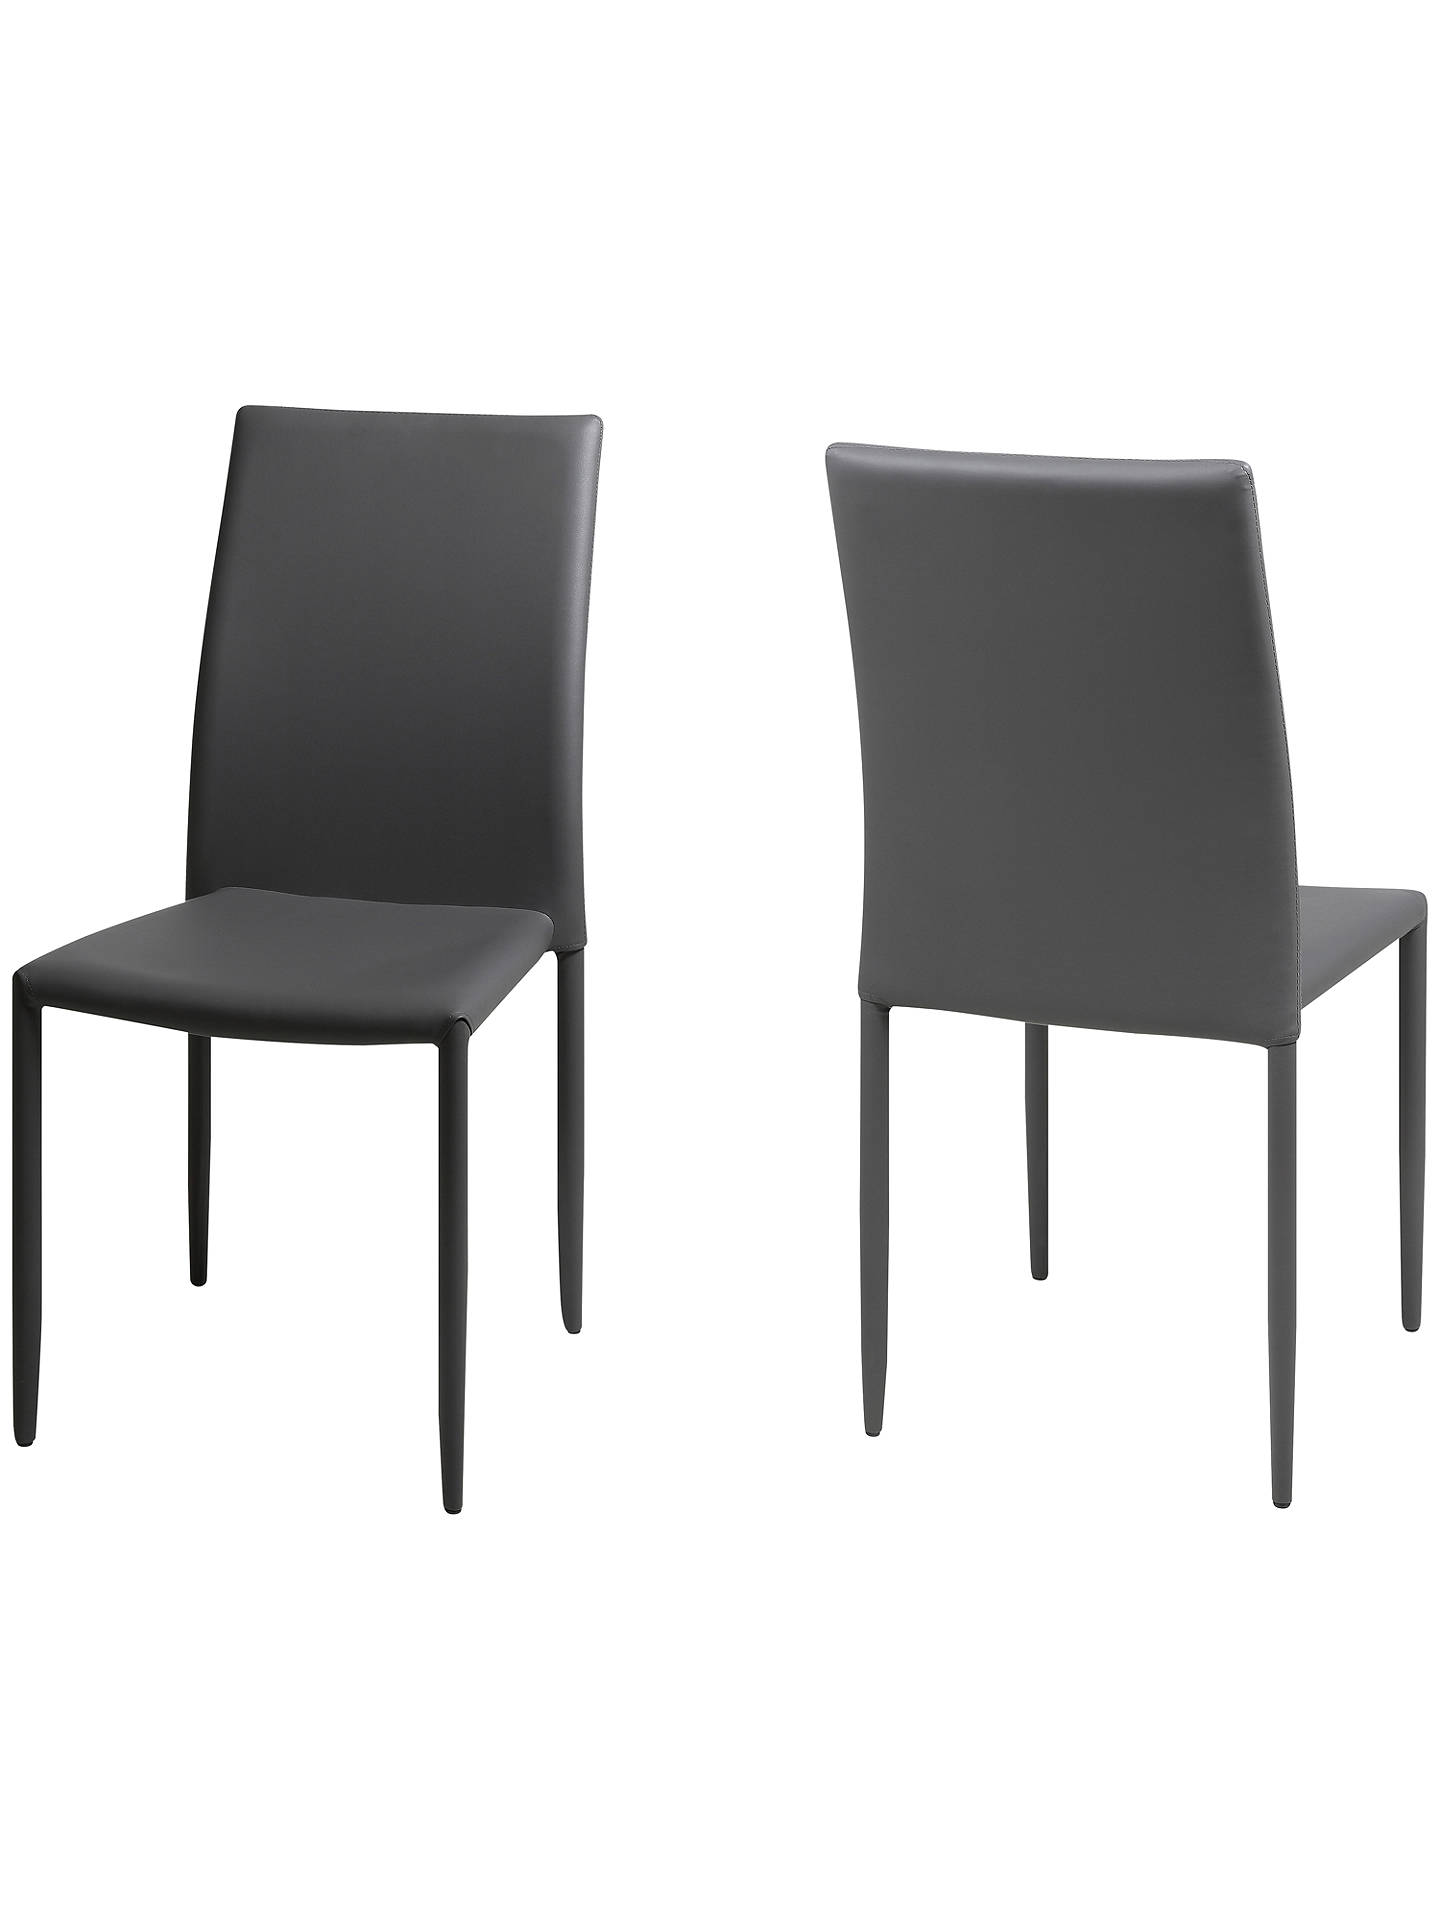 John Lewis Piana Dining Chairs Set Of 2 Grey At John